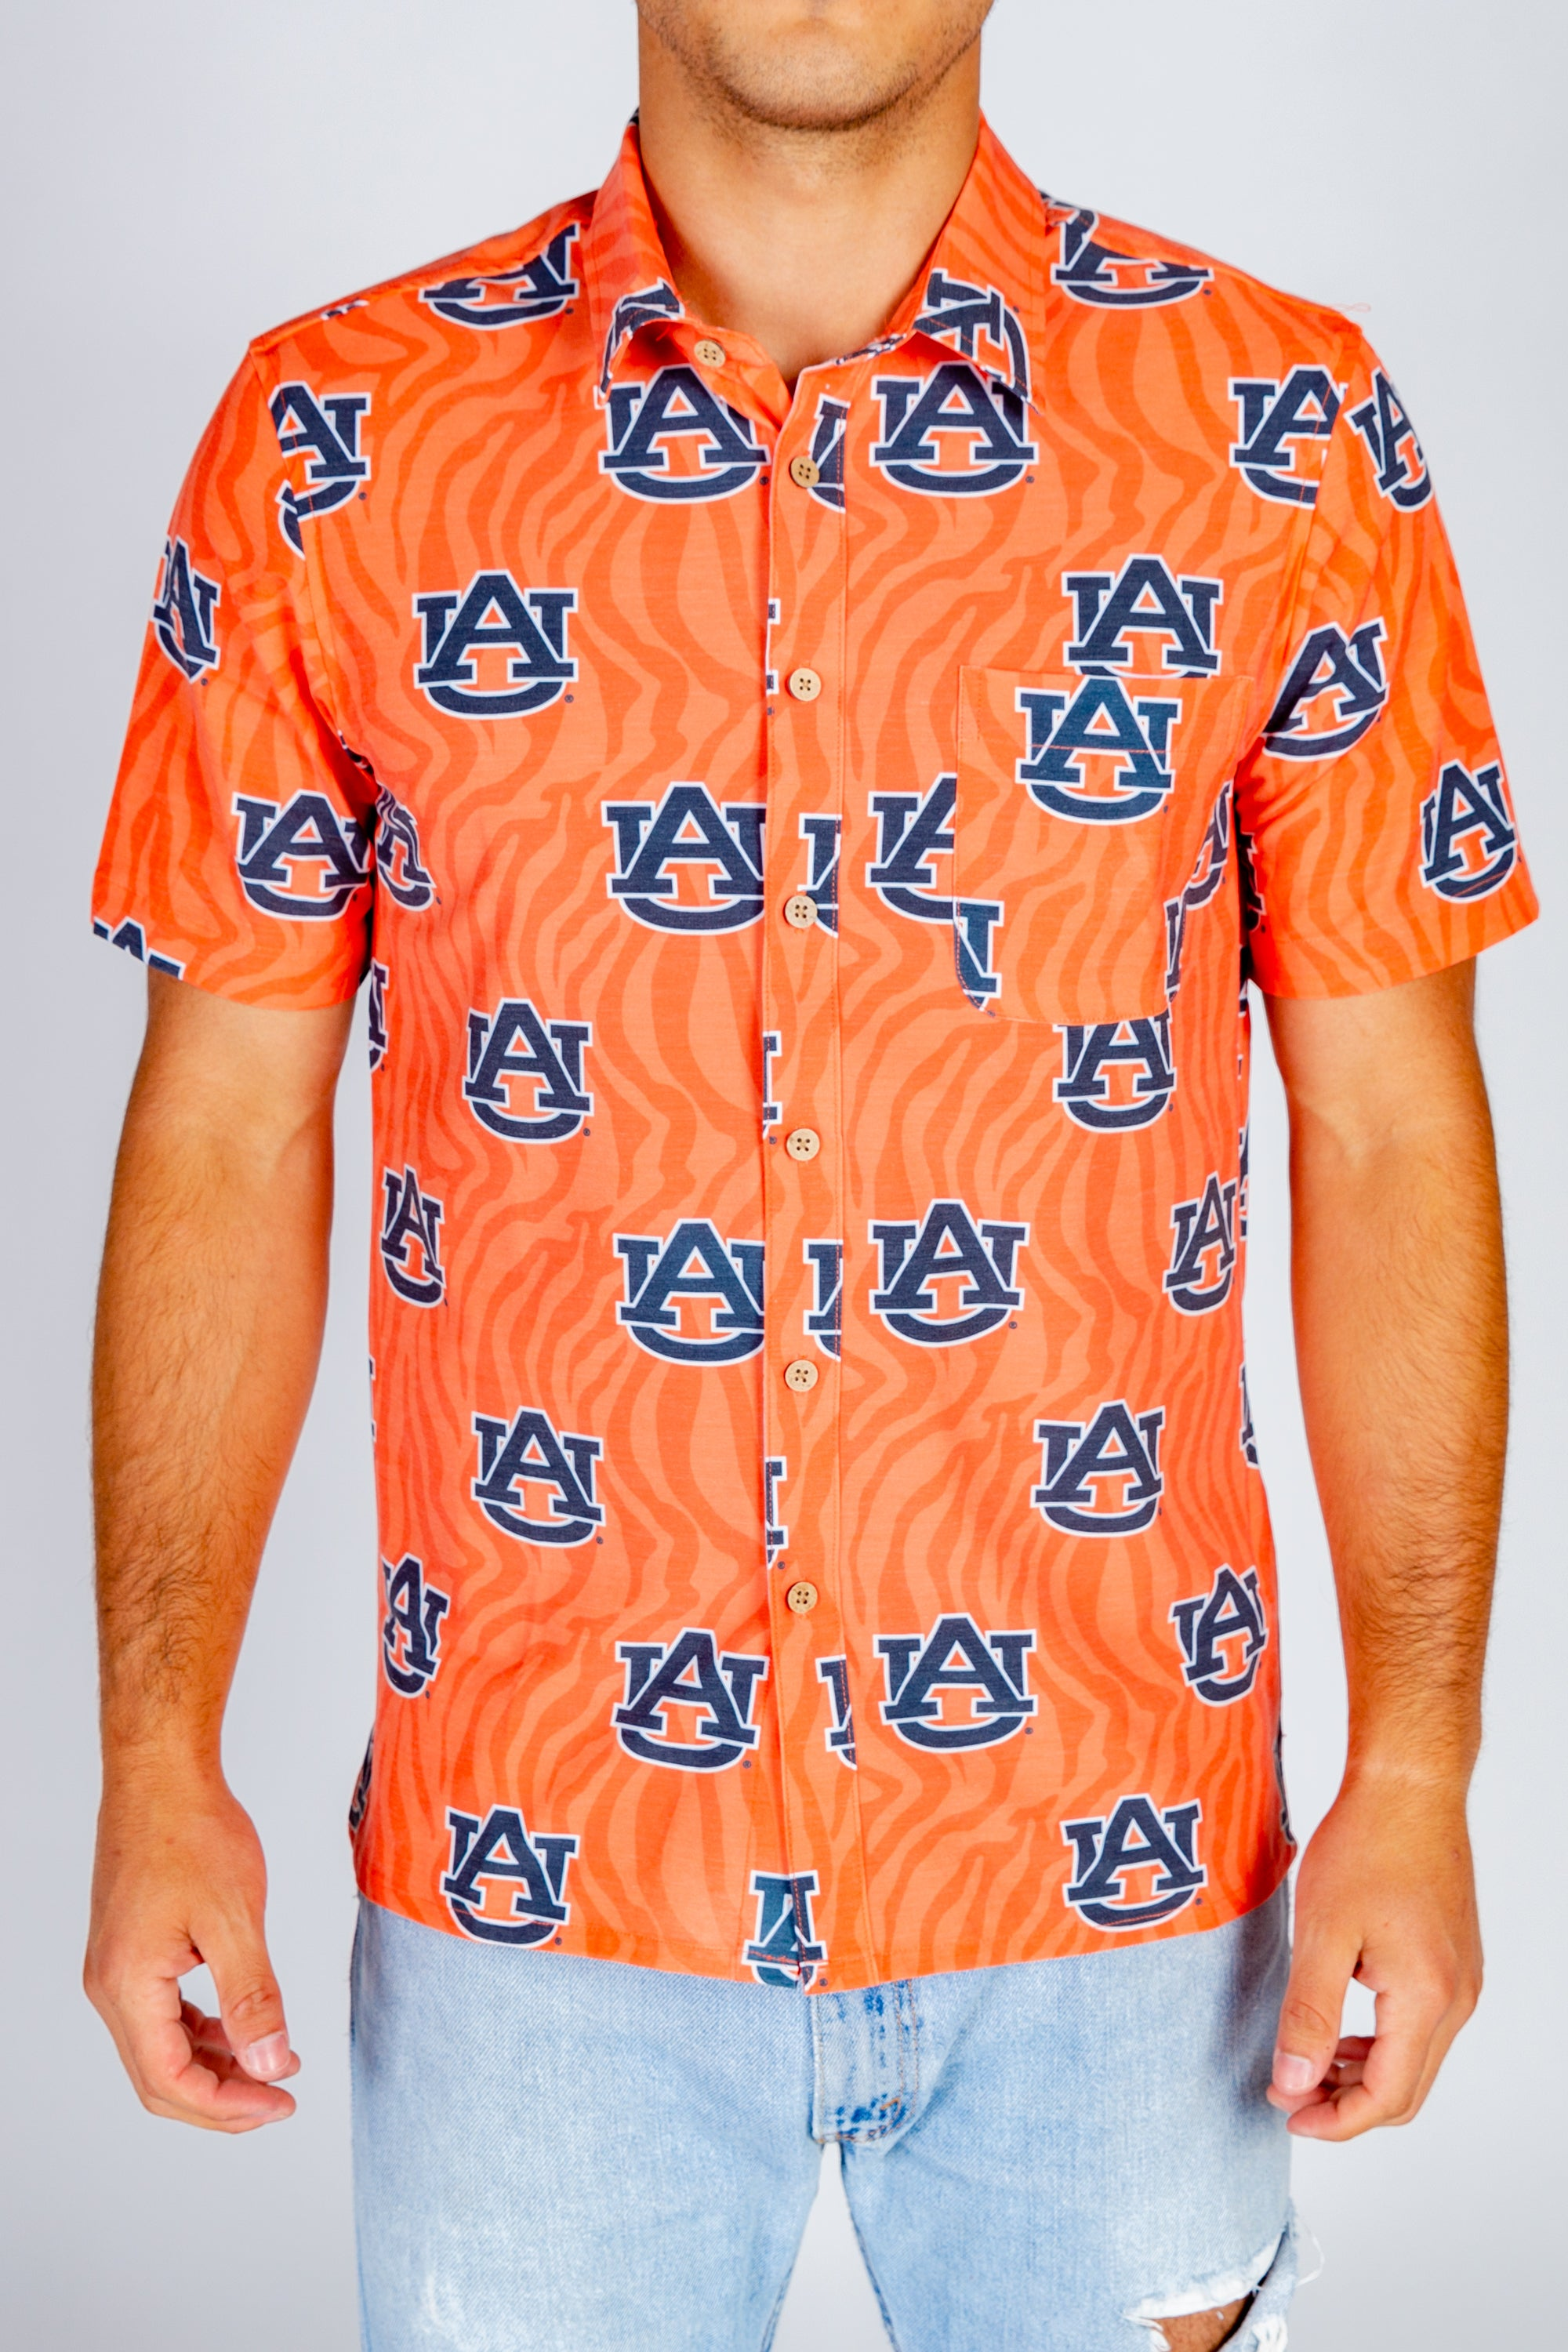 Auburn Tiger Walk Tailgating Shirt